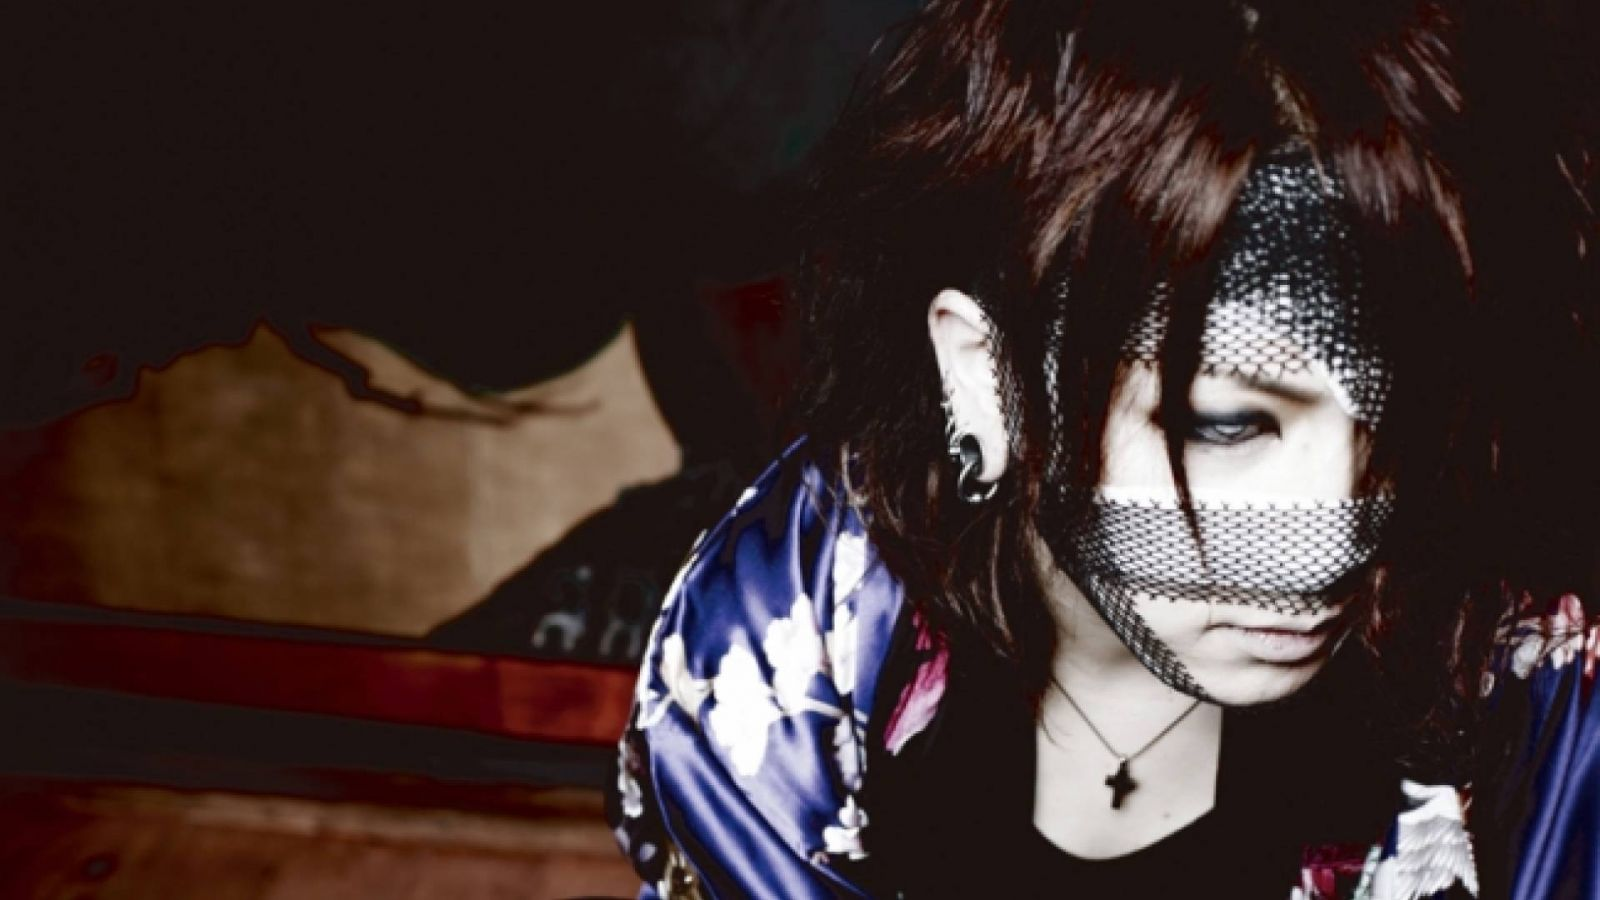 Zy 50: Ruki (the GazettE) © 2010 Zy.connection Inc. All Rights Reserved.